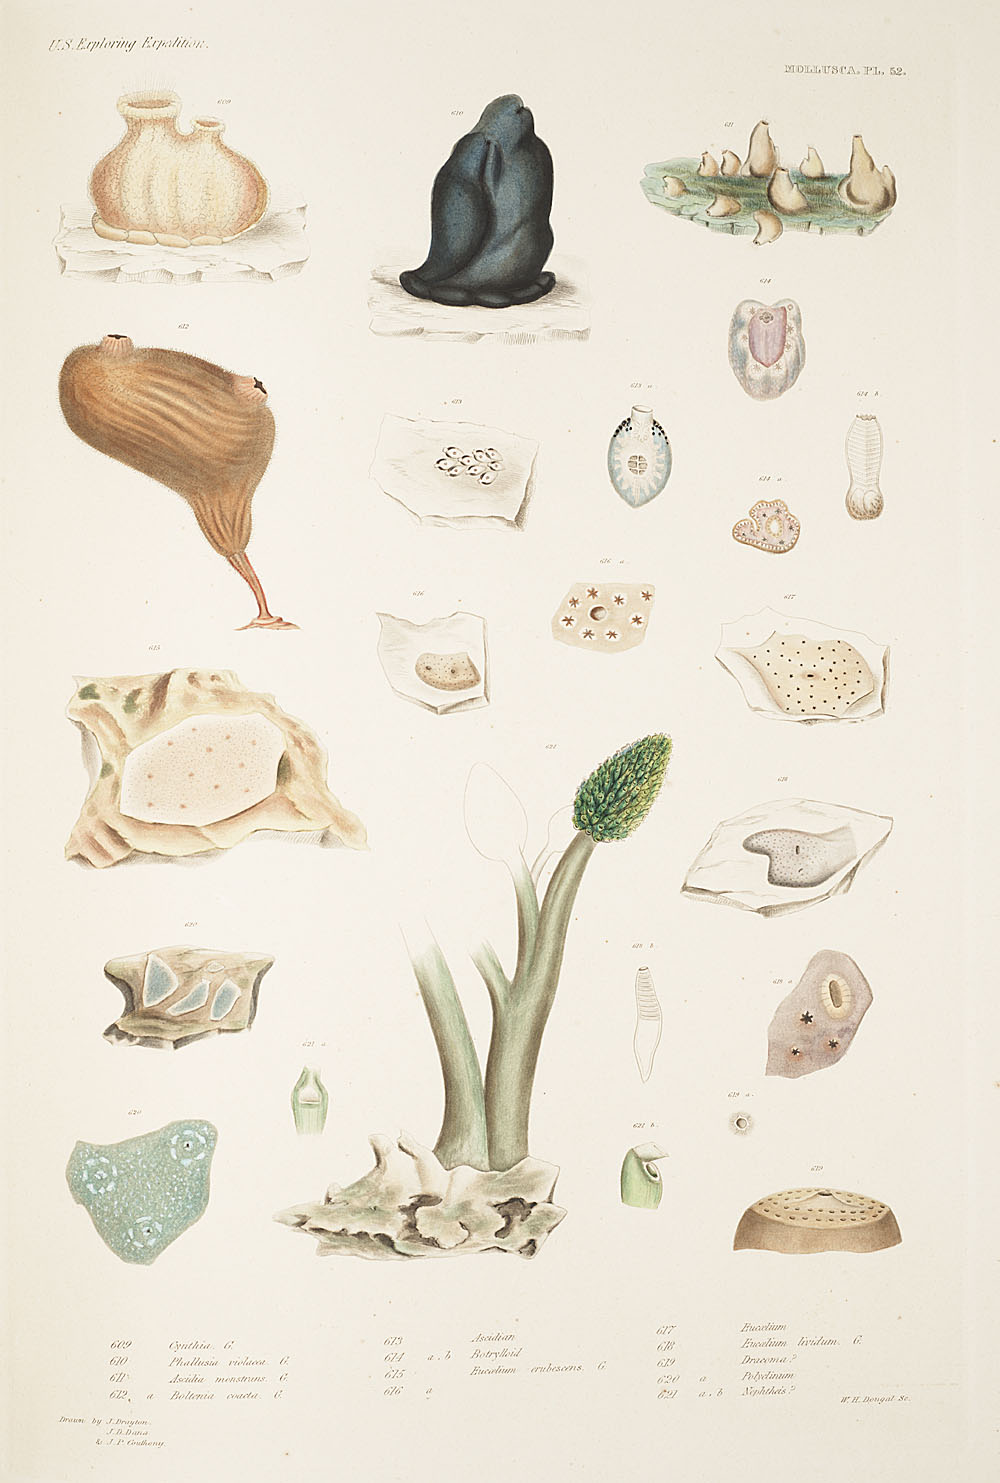 Mollusca, Pl. 52,  Image number:sil19-18-125b